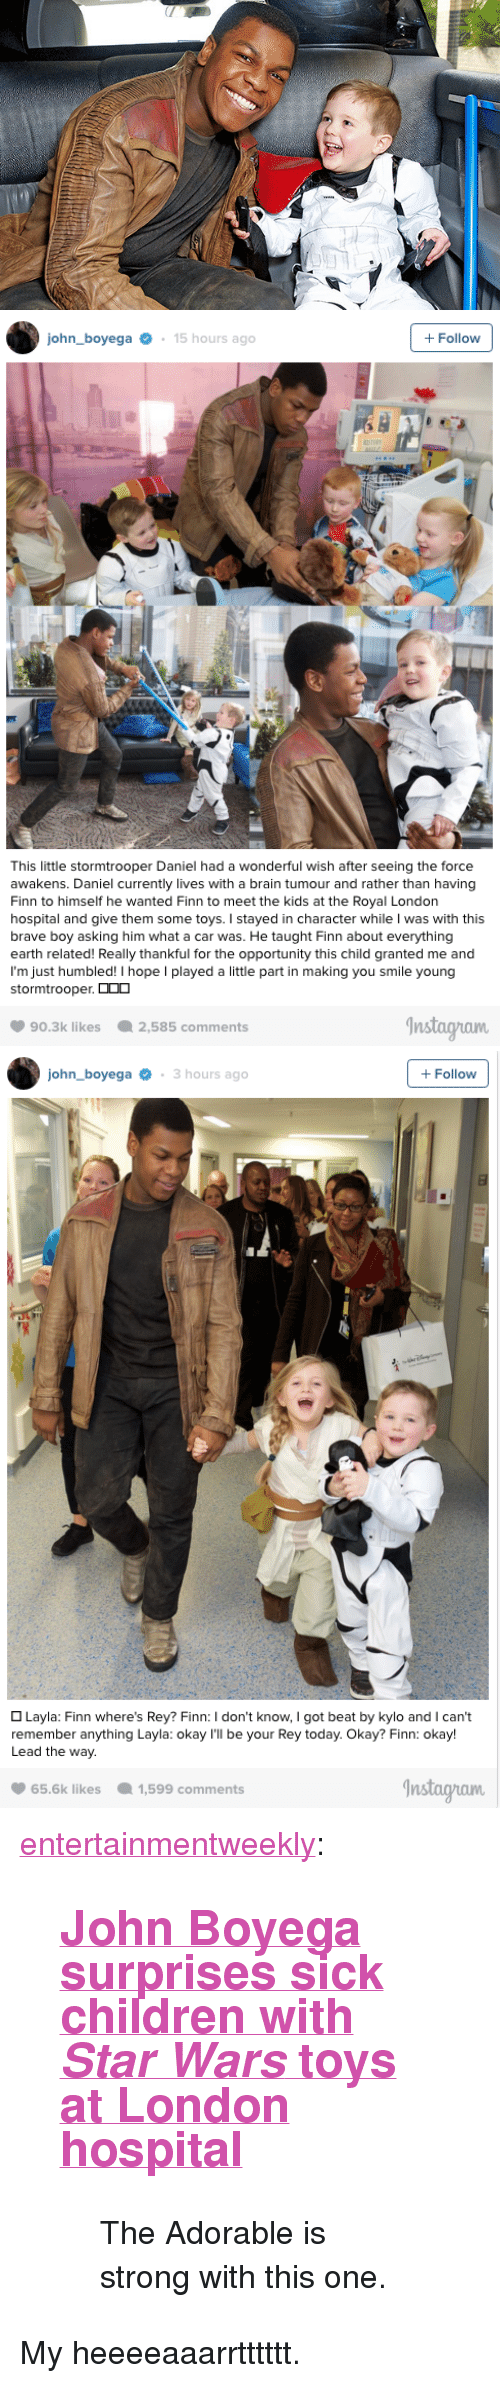 "Children, Finn, and John Boyega: john boyega15 hours ago  +Follow  This little stormtrooper Daniel had a wonderful wish after seeing the force  awakens. Daniel currently lives with a brain tumour and rather than having  Finn to himself he wanted Finn to meet the kids at the Royal London  hospital and give them some toys. I stayed in character while I was with this  brave boy asking him what a car was. He taught Finn about everything  earth related! Really thankful for the opportunity this child granted me and  I'm just humbled l hope I played a lite part in making you smile young  stormtrooper.  2,585 comments  Instagham  90.3k likes   john boyega3 hours ago  +Follow  Layla: Finn where's Rey? Finn: I don't know, I got beat by kylo and I can't  remember anything Layla: okay I'll be your Rey today. Okay? Finn: okay!  Lead the way.  65.6k likes1,599 comments  nstaayuaum <p><a class=""tumblr_blog"" href=""http://entertainmentweekly.tumblr.com/post/141034381232"">entertainmentweekly</a>:</p> <blockquote> <h2><b><a href=""http://www.ew.com/article/2016/03/14/star-wars-john-boyega-surprises-sick-children-toys"">John Boyega surprises sick children with <i>Star Wars</i> toys at London hospital</a></b></h2> <blockquote><p>The Adorable is strong with this one.</p></blockquote> </blockquote>  <p>My heeeeaaarrtttttt.</p>"